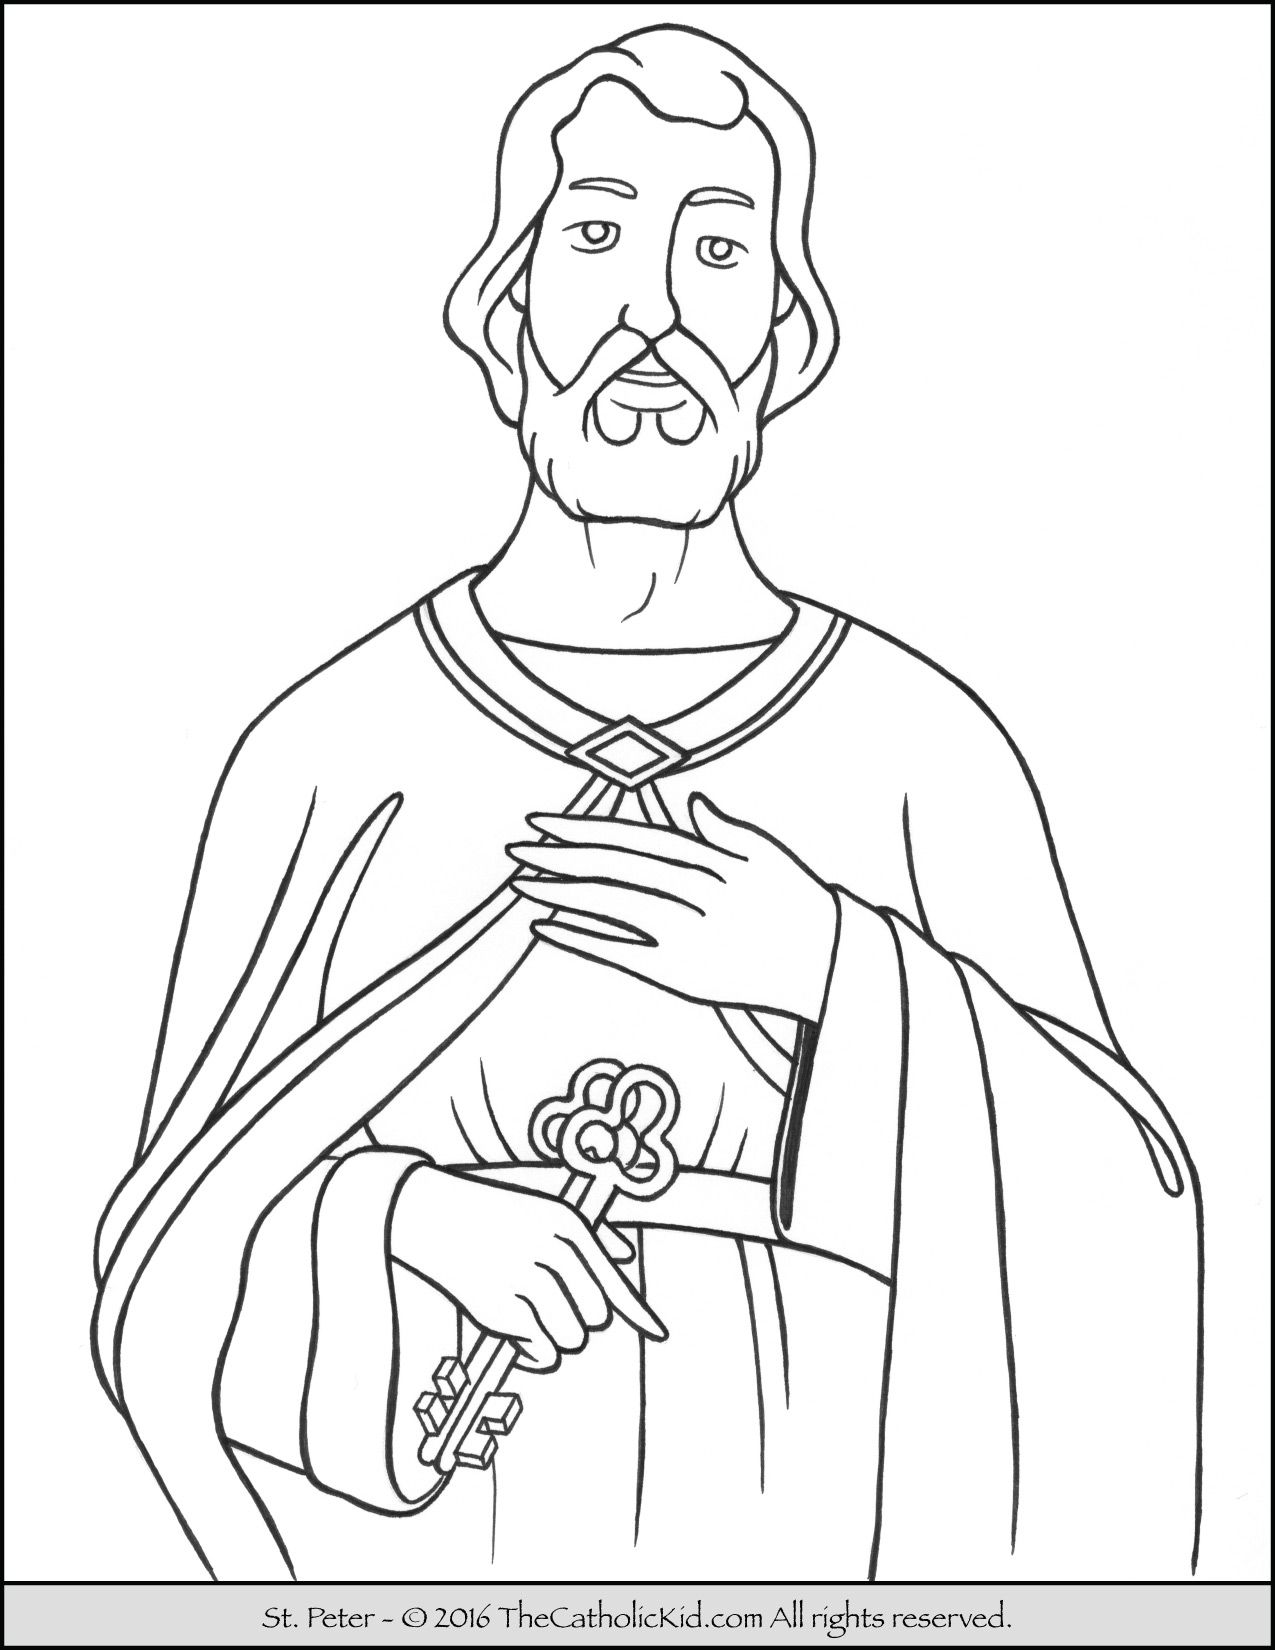 Saint Peter Coloring Page The Catholic Kid Sunday School Coloring Pages School Coloring Pages Saint Coloring